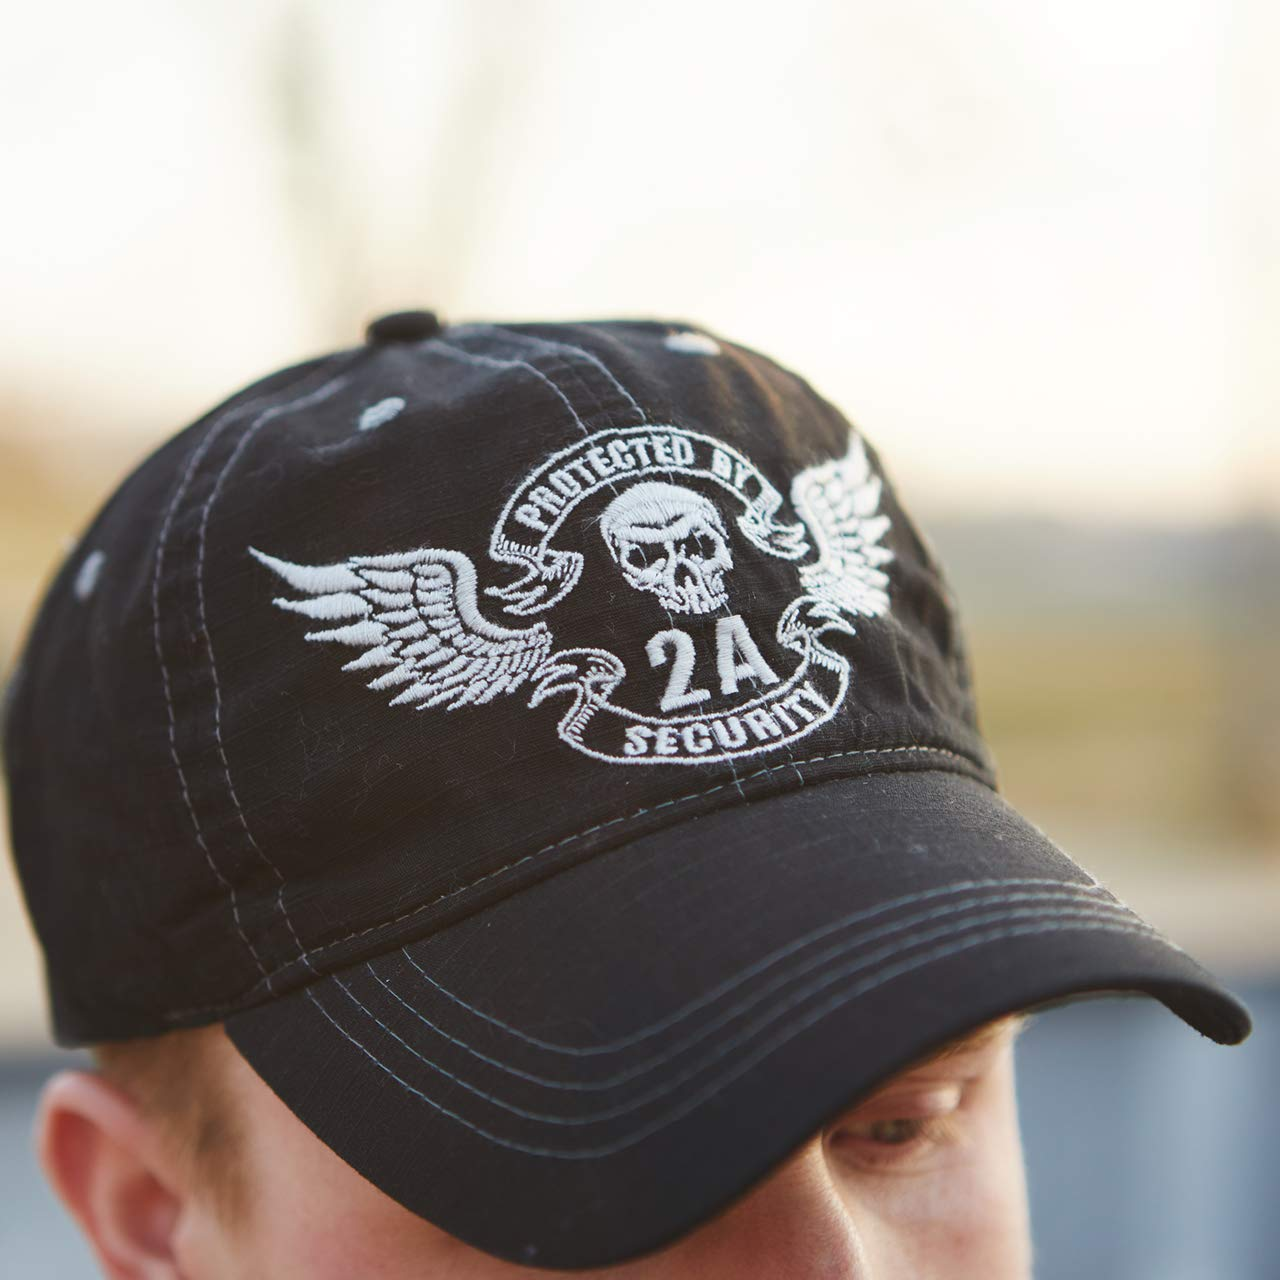 one Size Bonehead Outfitters Mens 2A Security Black Cap